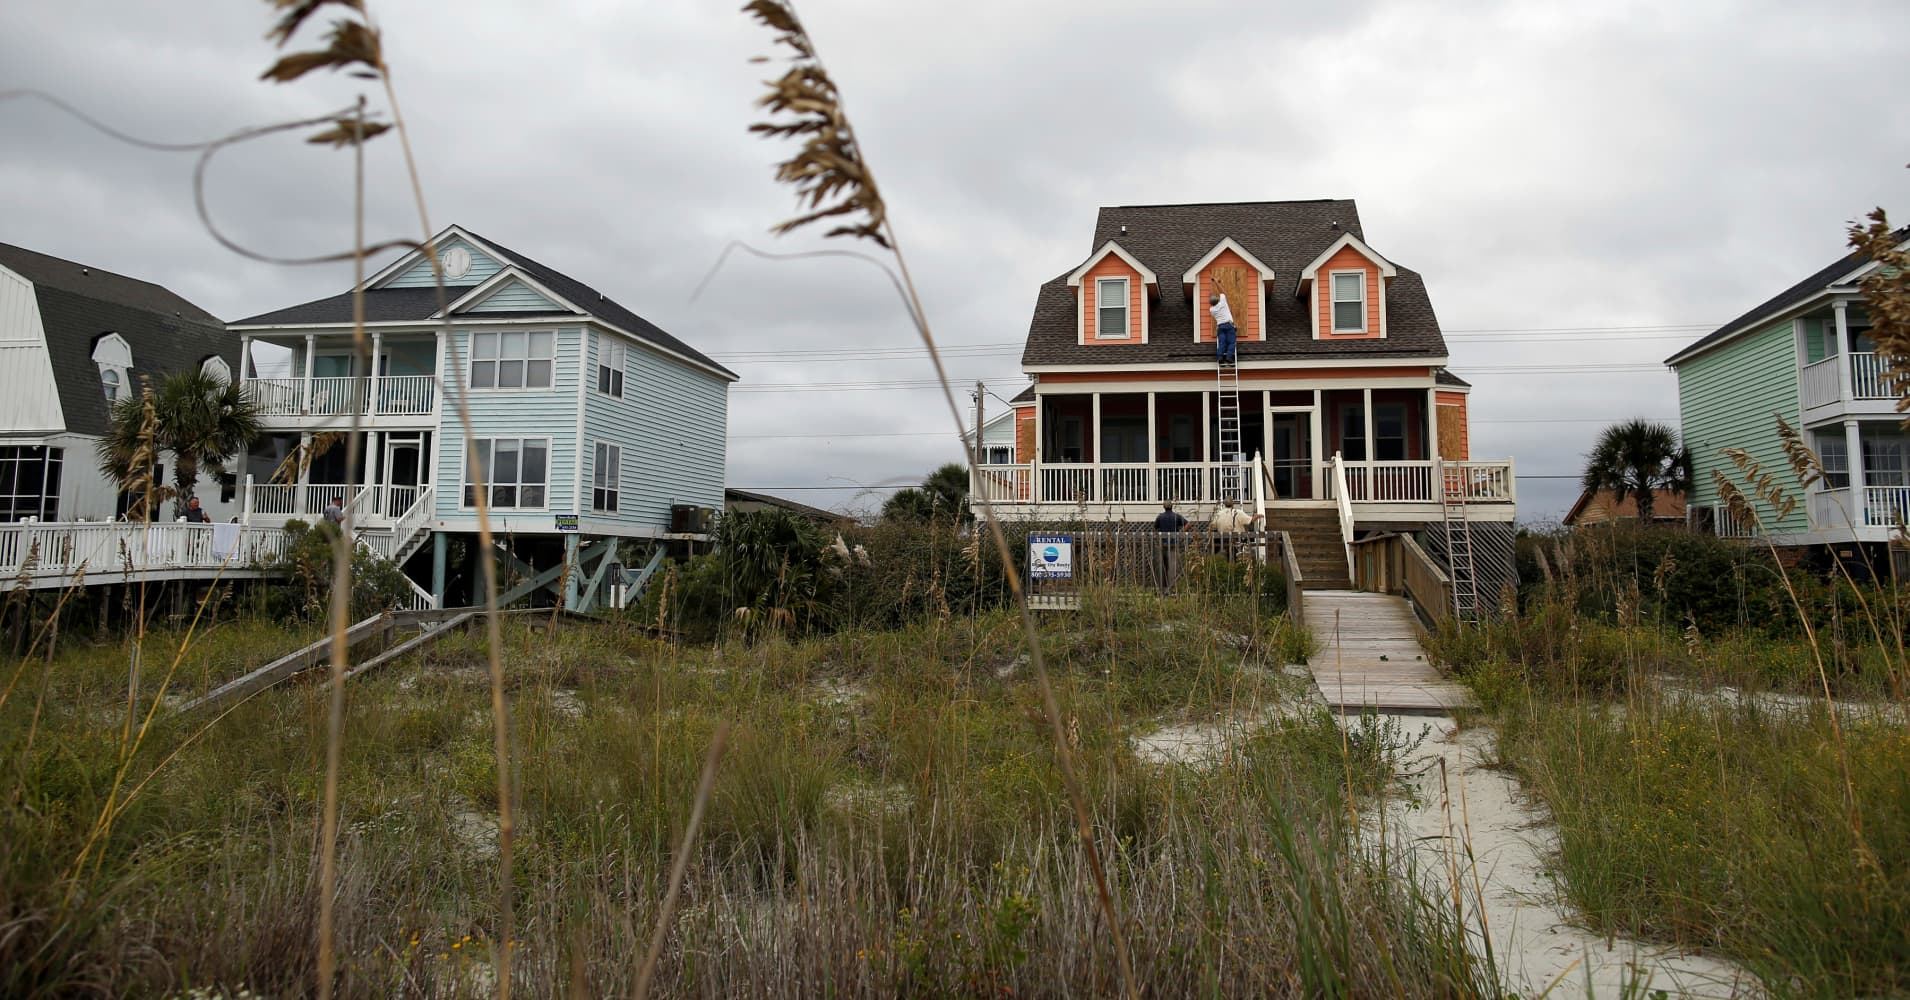 Hurricane Matthew could inflict $200 billion in damage to coastal homes